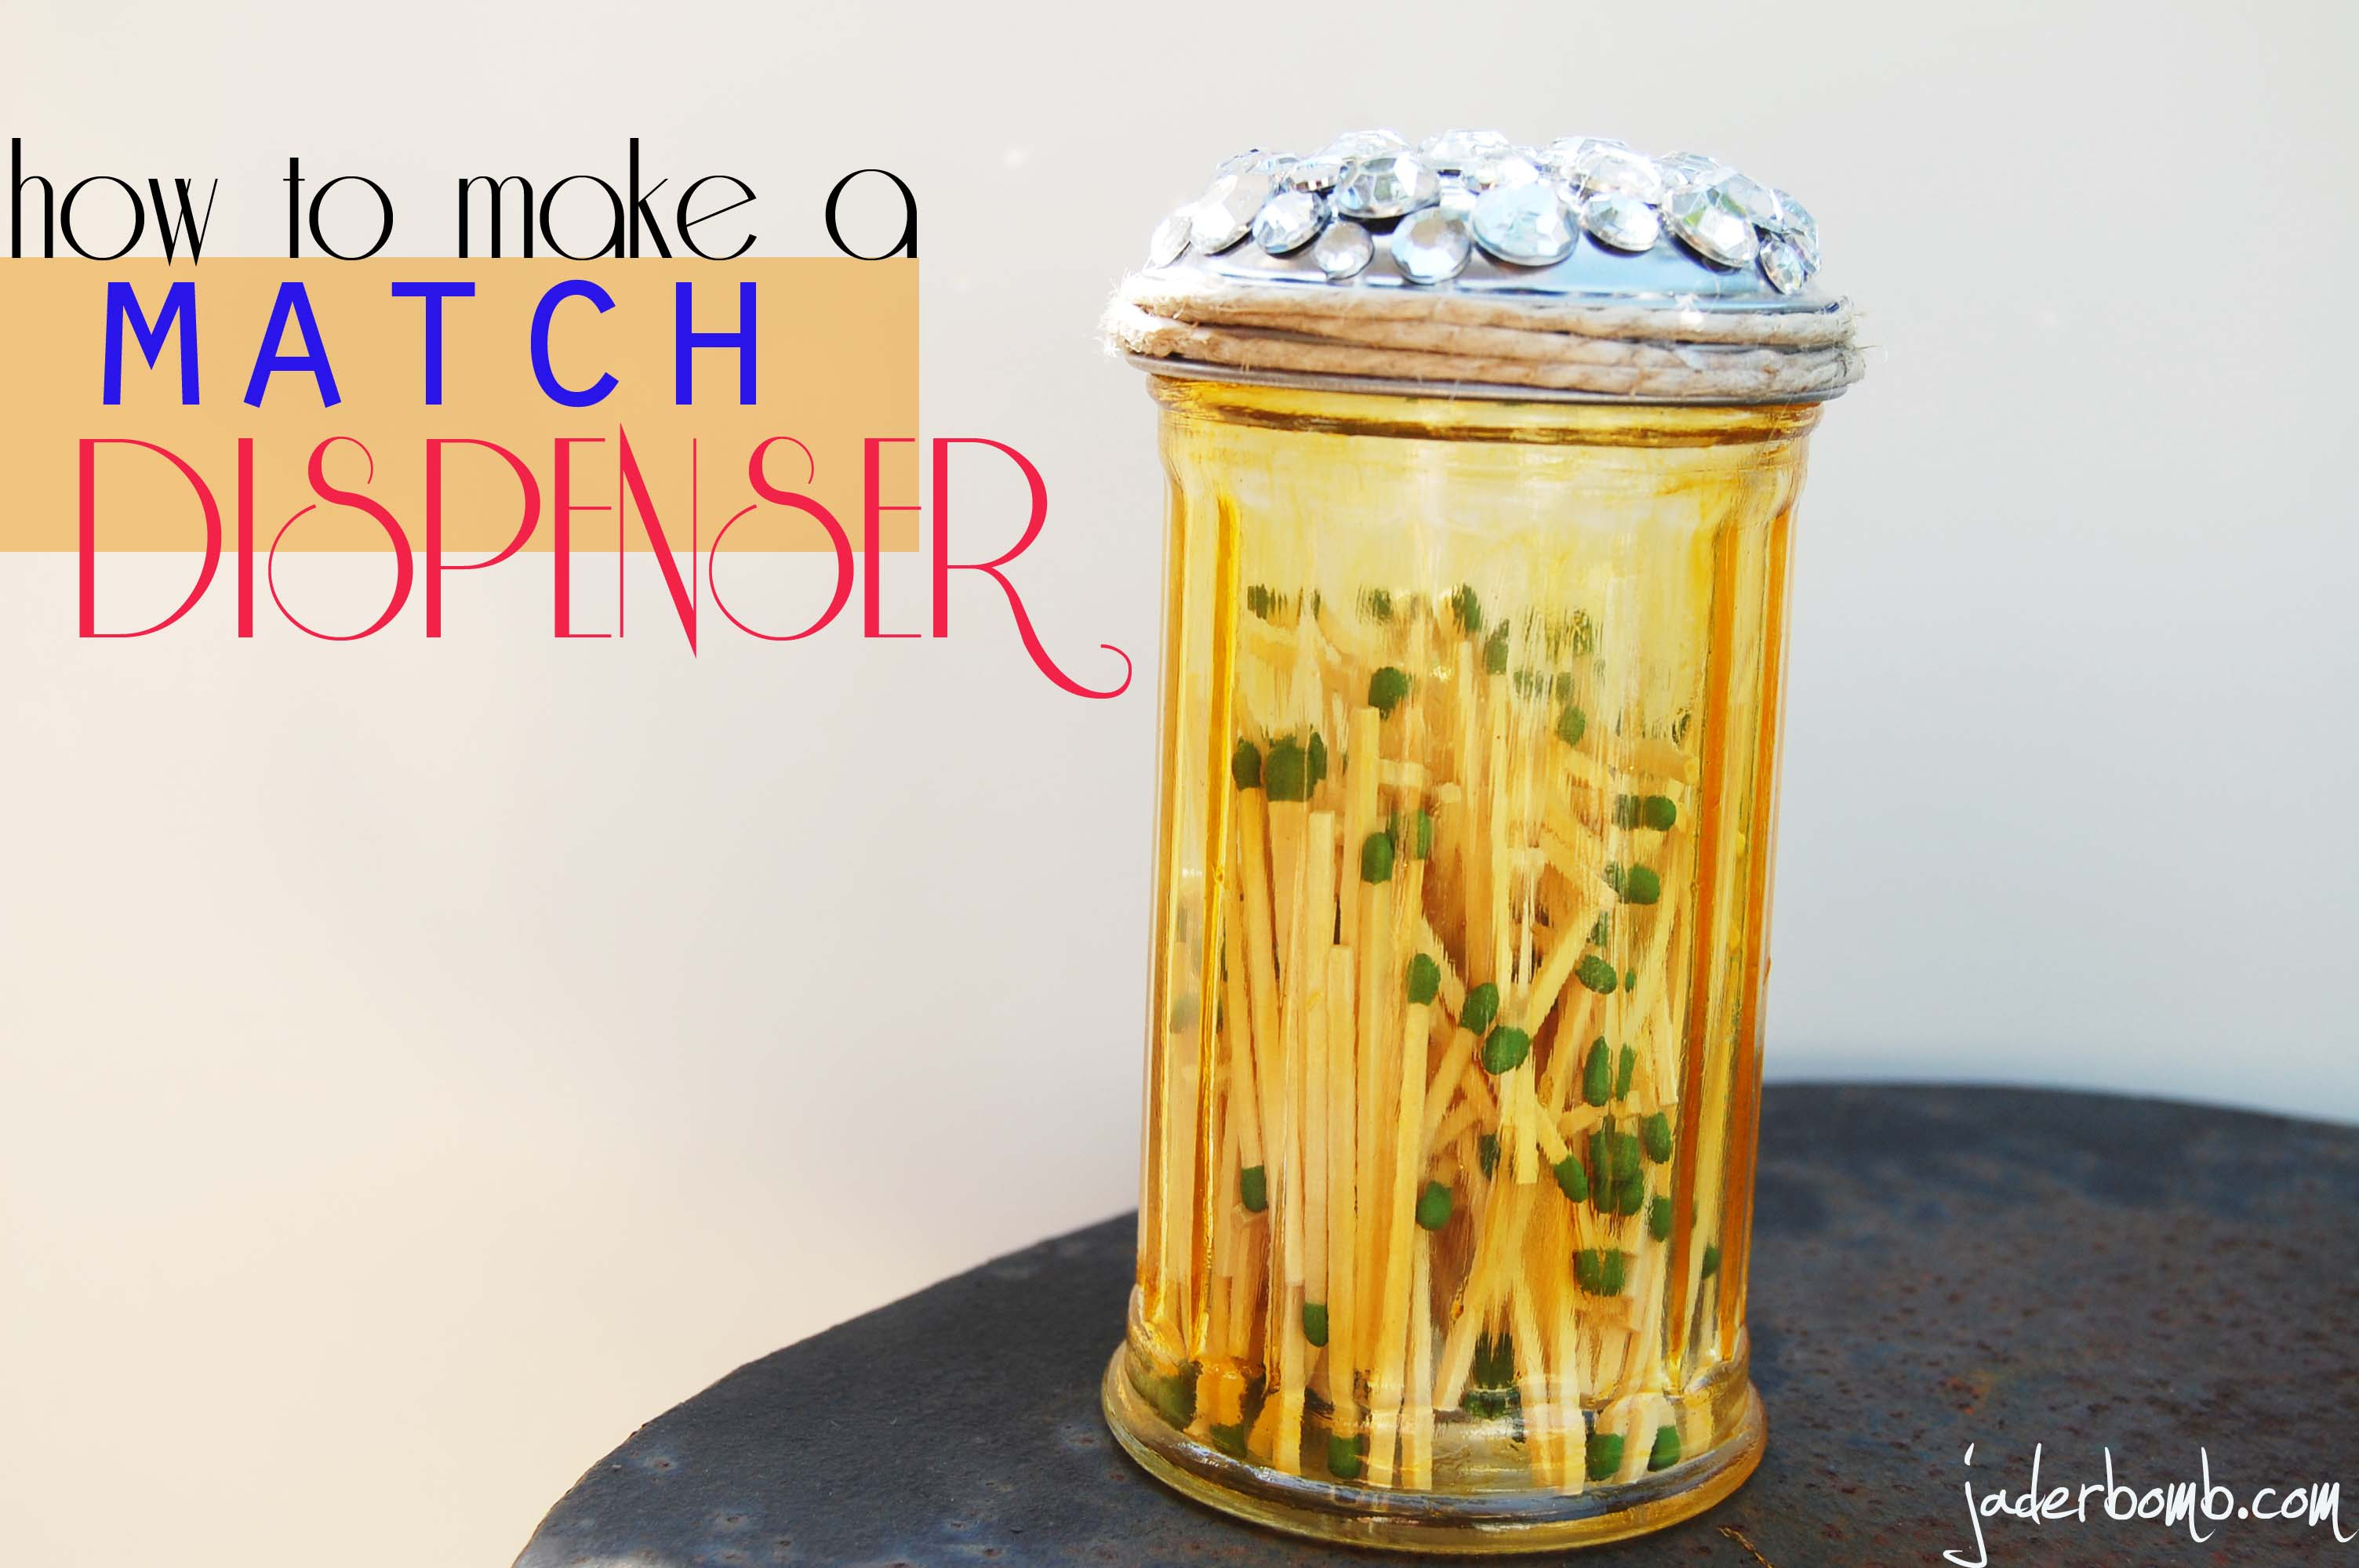 make-a-match-dispenser